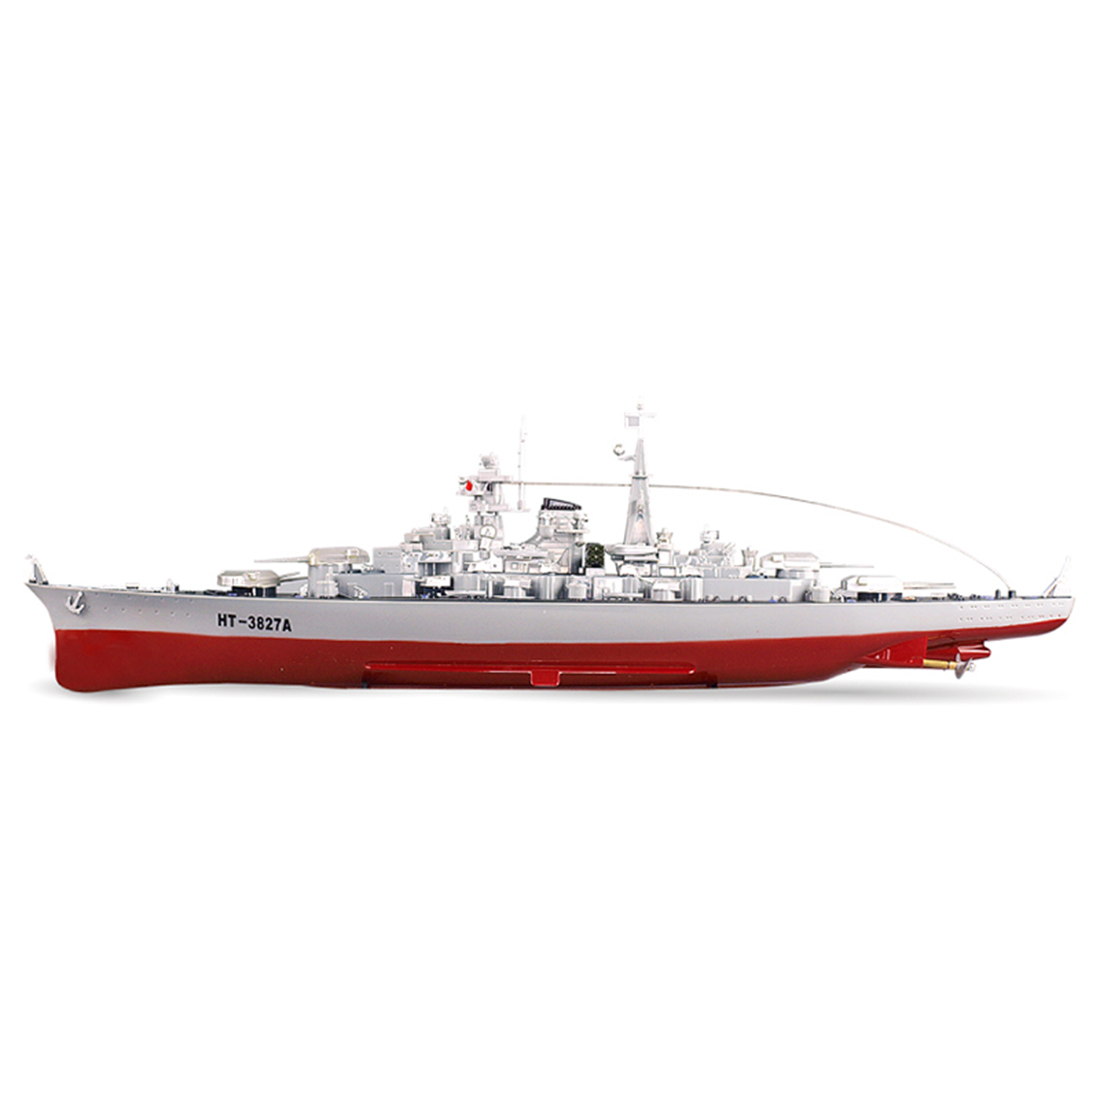 Hot 71cm 1:360 RC Military Battleship RC Cruiser Warship Toy <font><b>Control</b></font> Military RC Boat Destroyer Model Toys Best Gifts - US Plug image